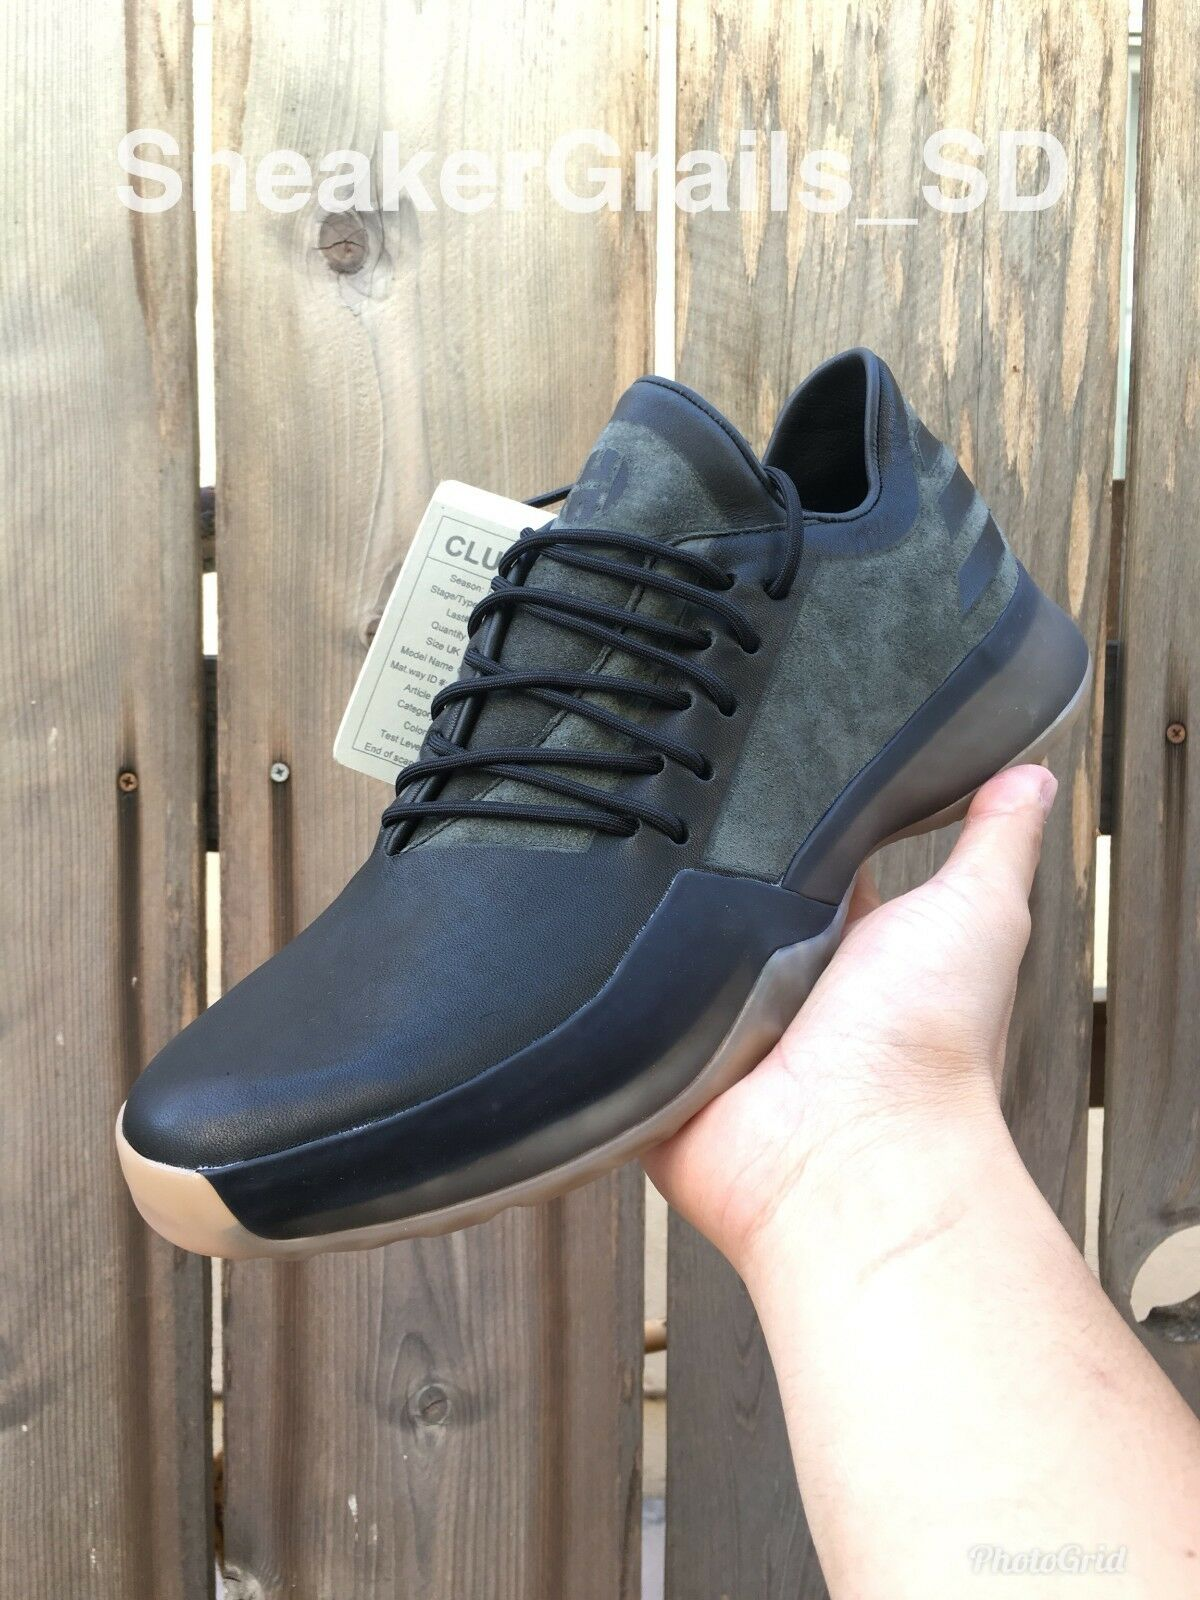 Adidas Harden Vol 1 Milled Leather Promo Sample Size 9